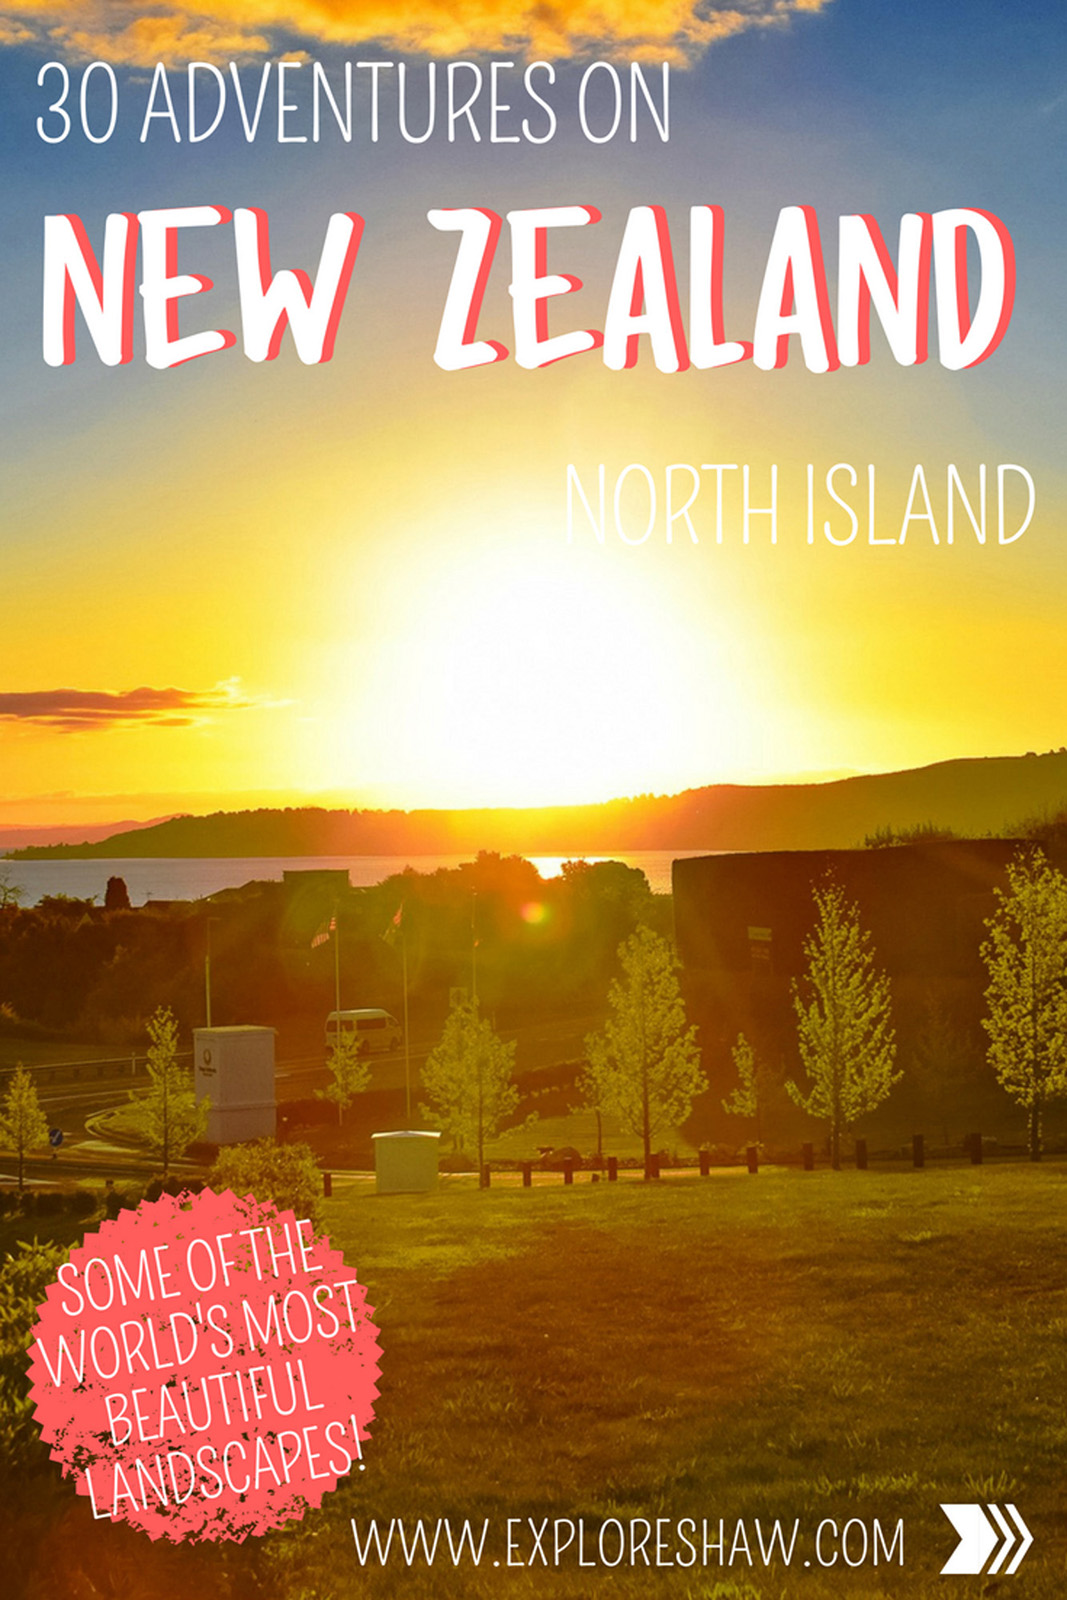 30 ADVENTURES ON NEW ZEALAND'S NORTH ISLAND